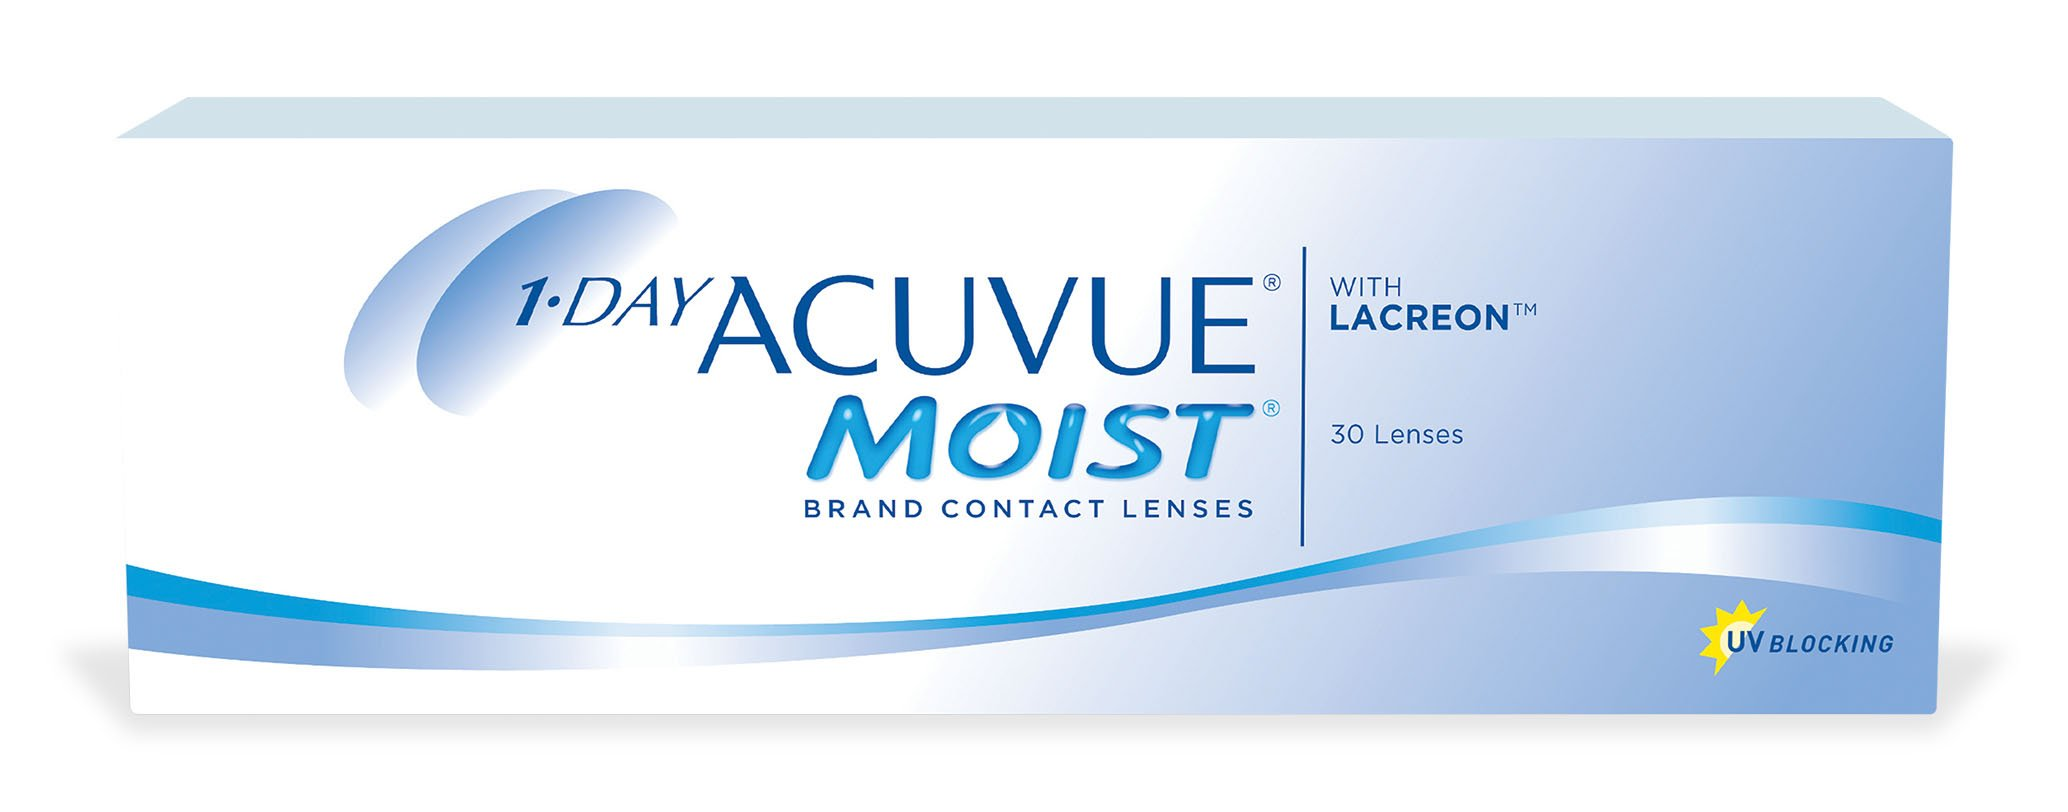 1-DAY ACUVUE® MOIST con LACREON®